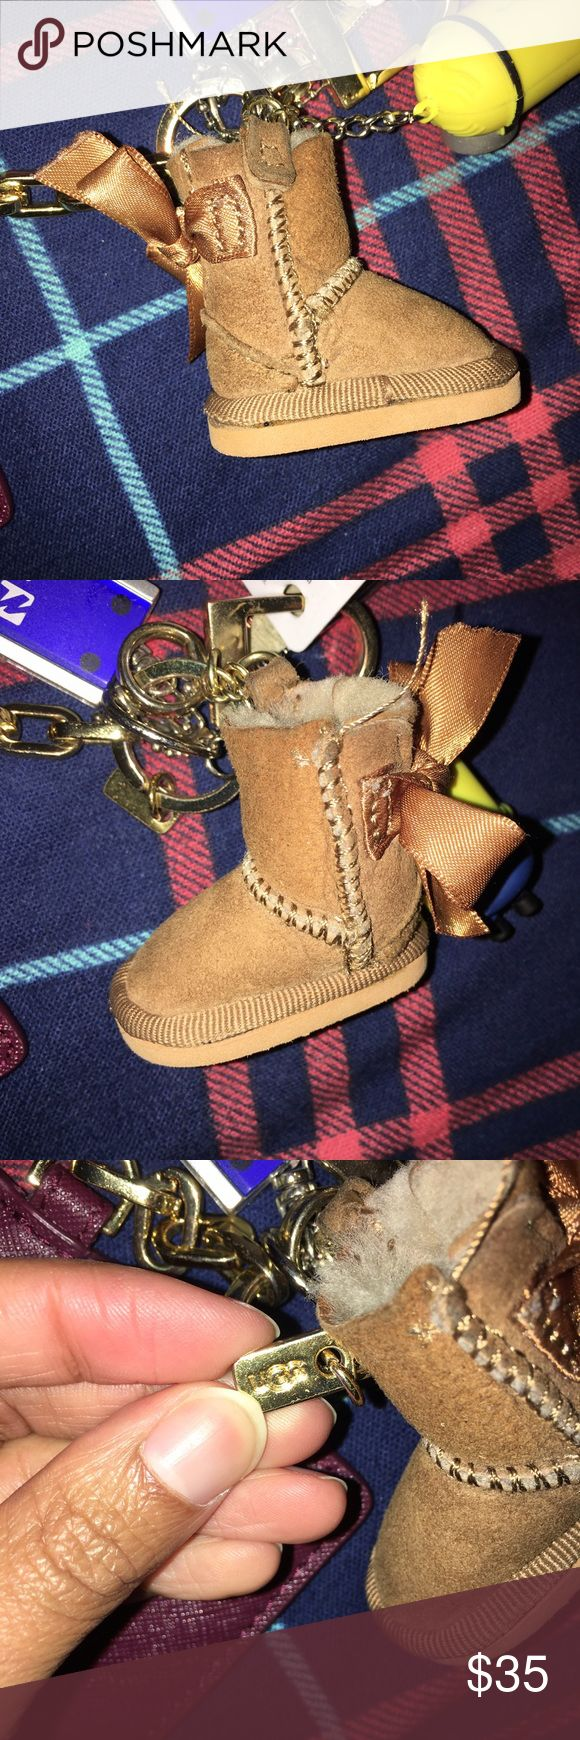 UGG BOOT KEYCHAIN Ugg boot keychain , bought at original UGG store UGG Accessories